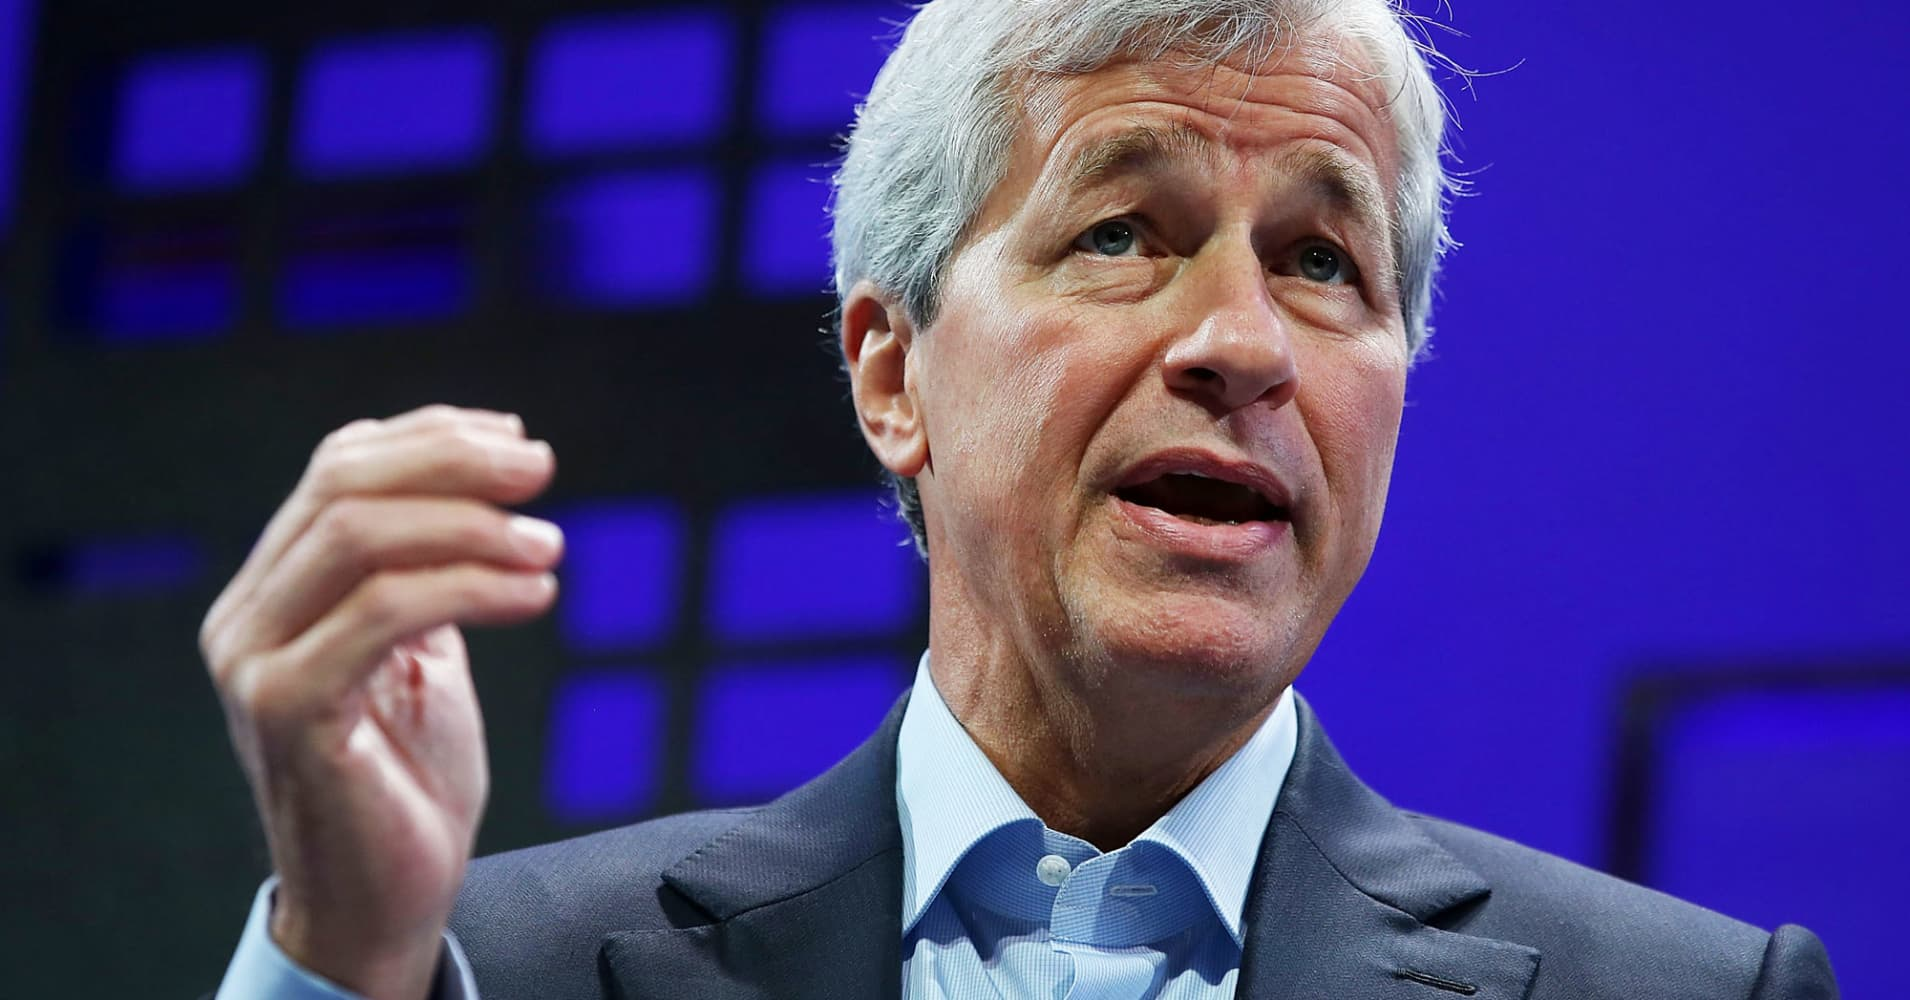 Jamie Dimon says if you're 'stupid' enough to buy bitcoin, you'll pay the price one day - CNBC